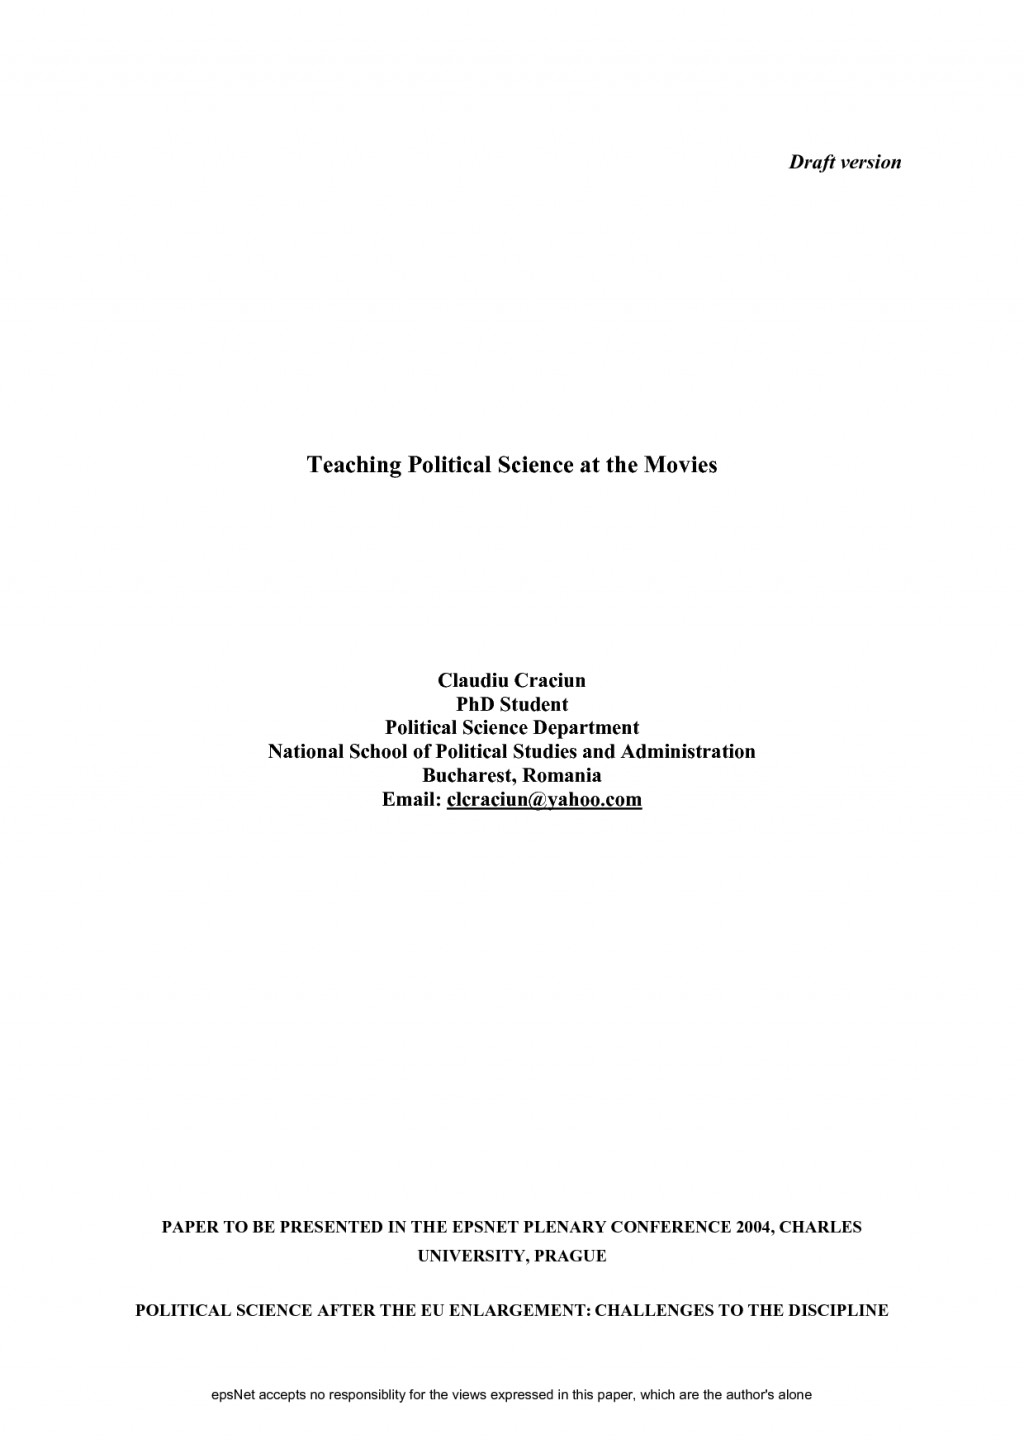 019 Research Paper Apsa Example Cover Page 319500 Template For Rare Apa Sample How To Do A Format Large